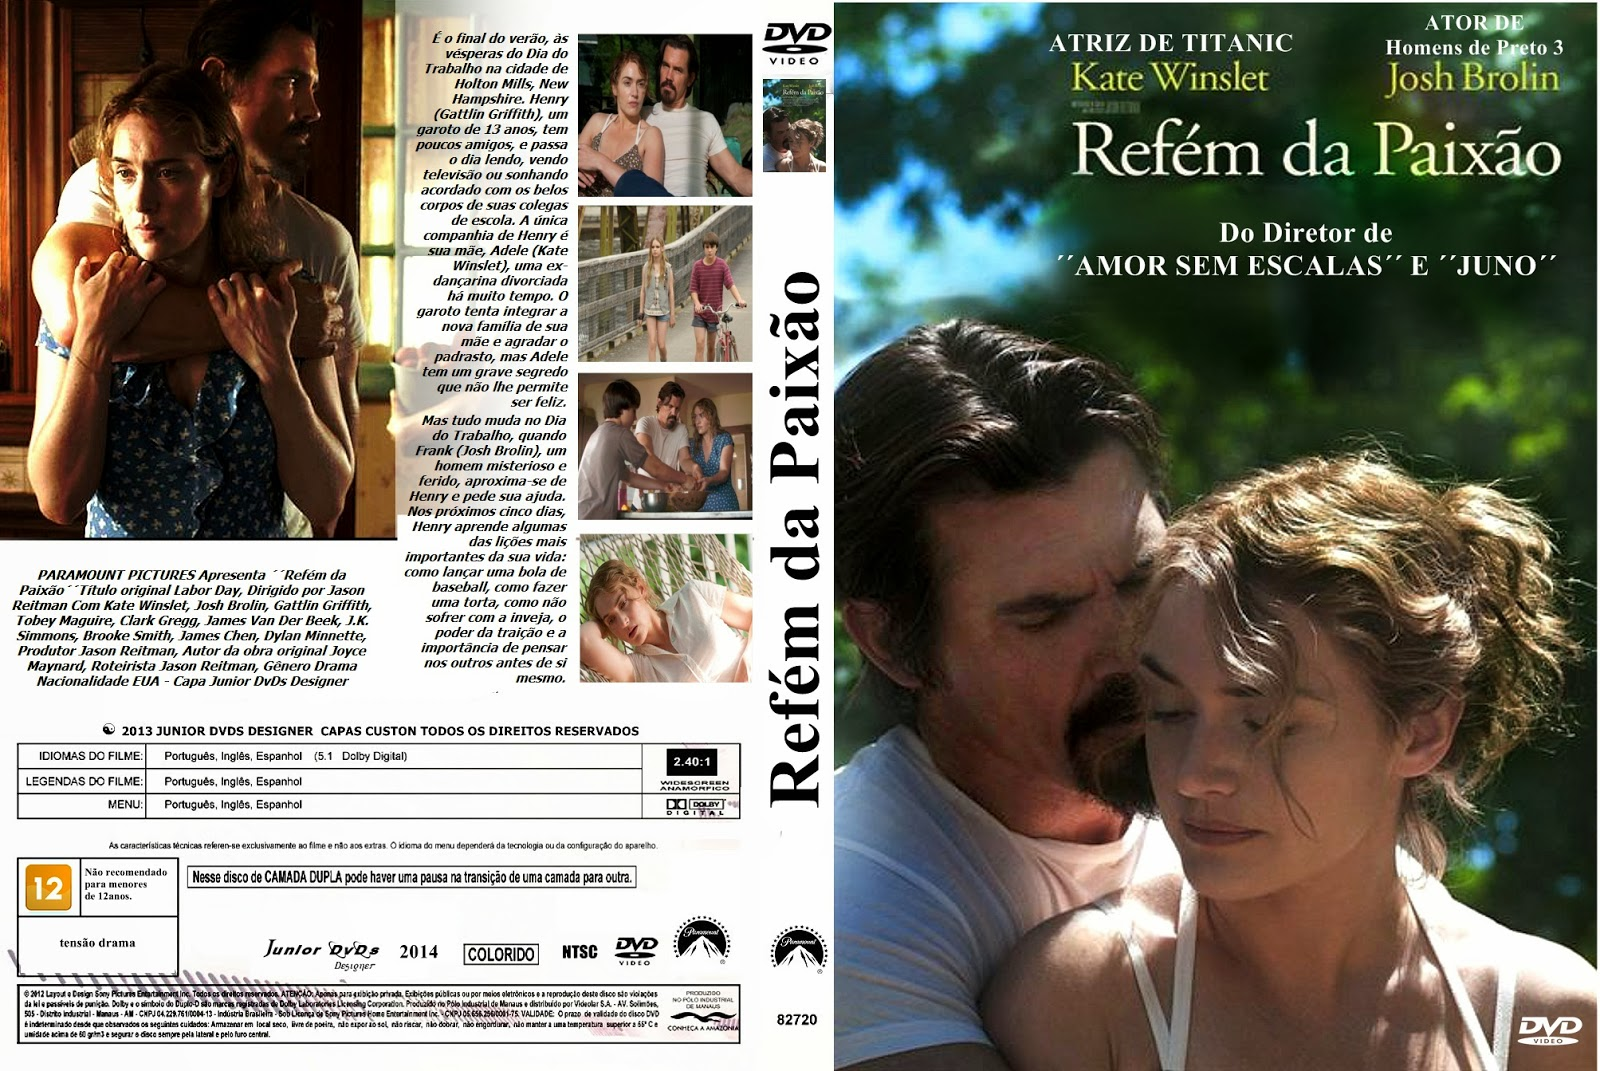 Refém da Paixão BDRip XviD Dual Áudio CAPA DO FILME REF C3 89M DA PAIX C3 83O    JUNIOR DVDS DESIGNER